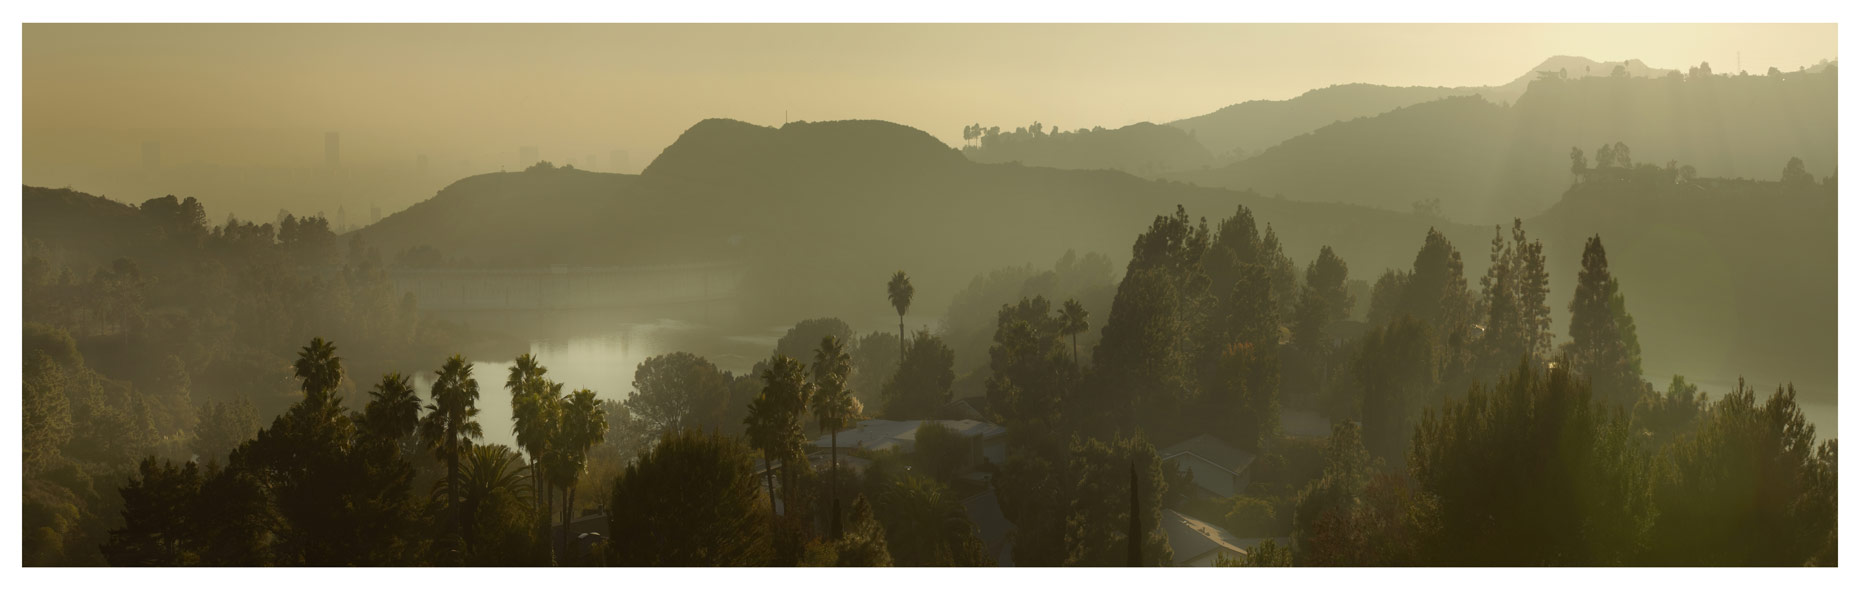 hollywood-hills-panorama-tp-print-HR-DUP.jpg